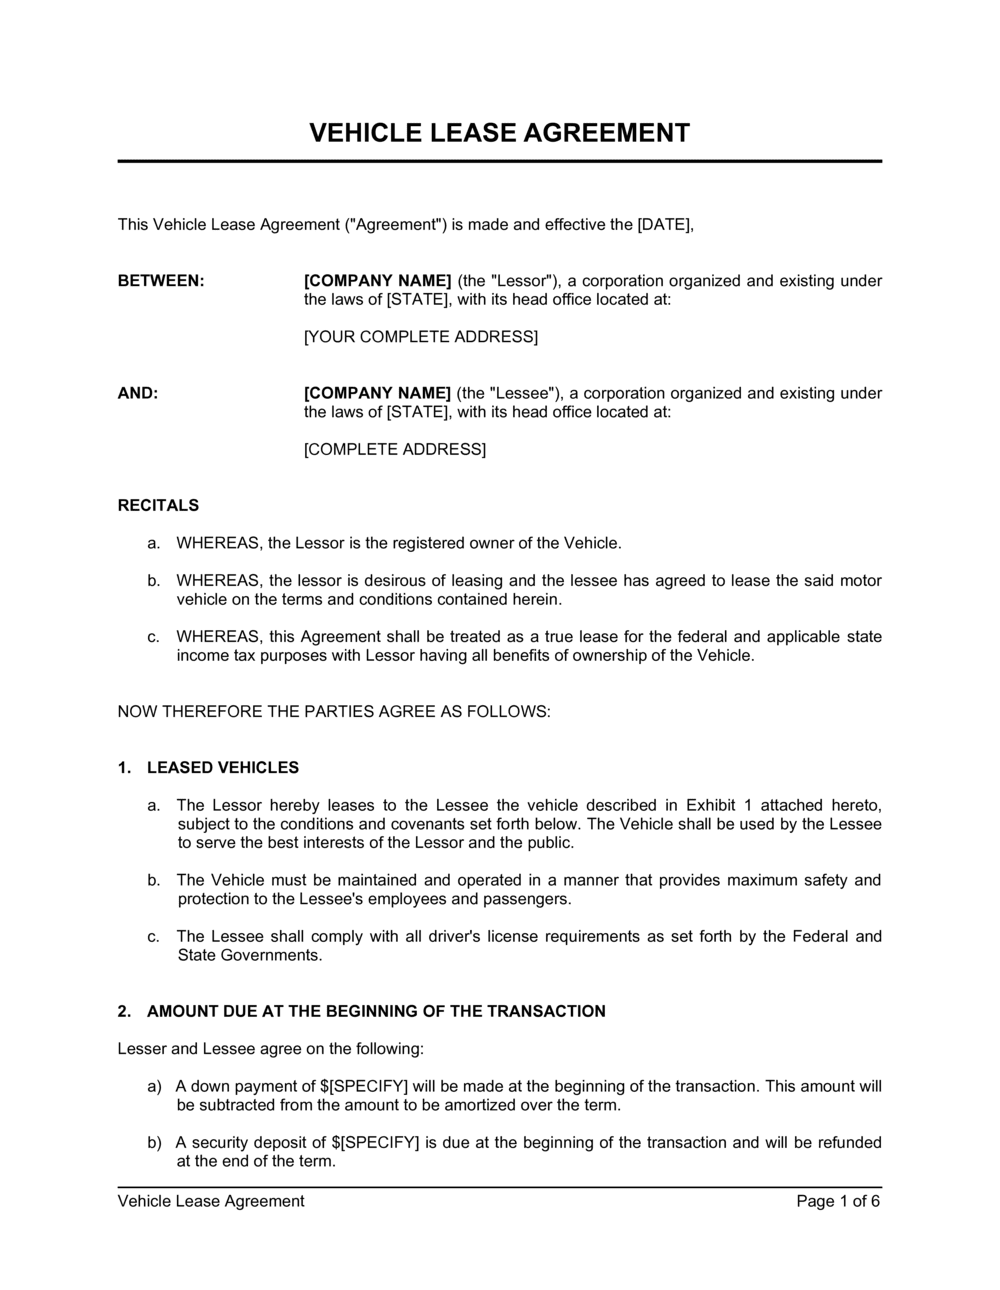 Business-in-a-Box's Vehicle Lease Agreement Template